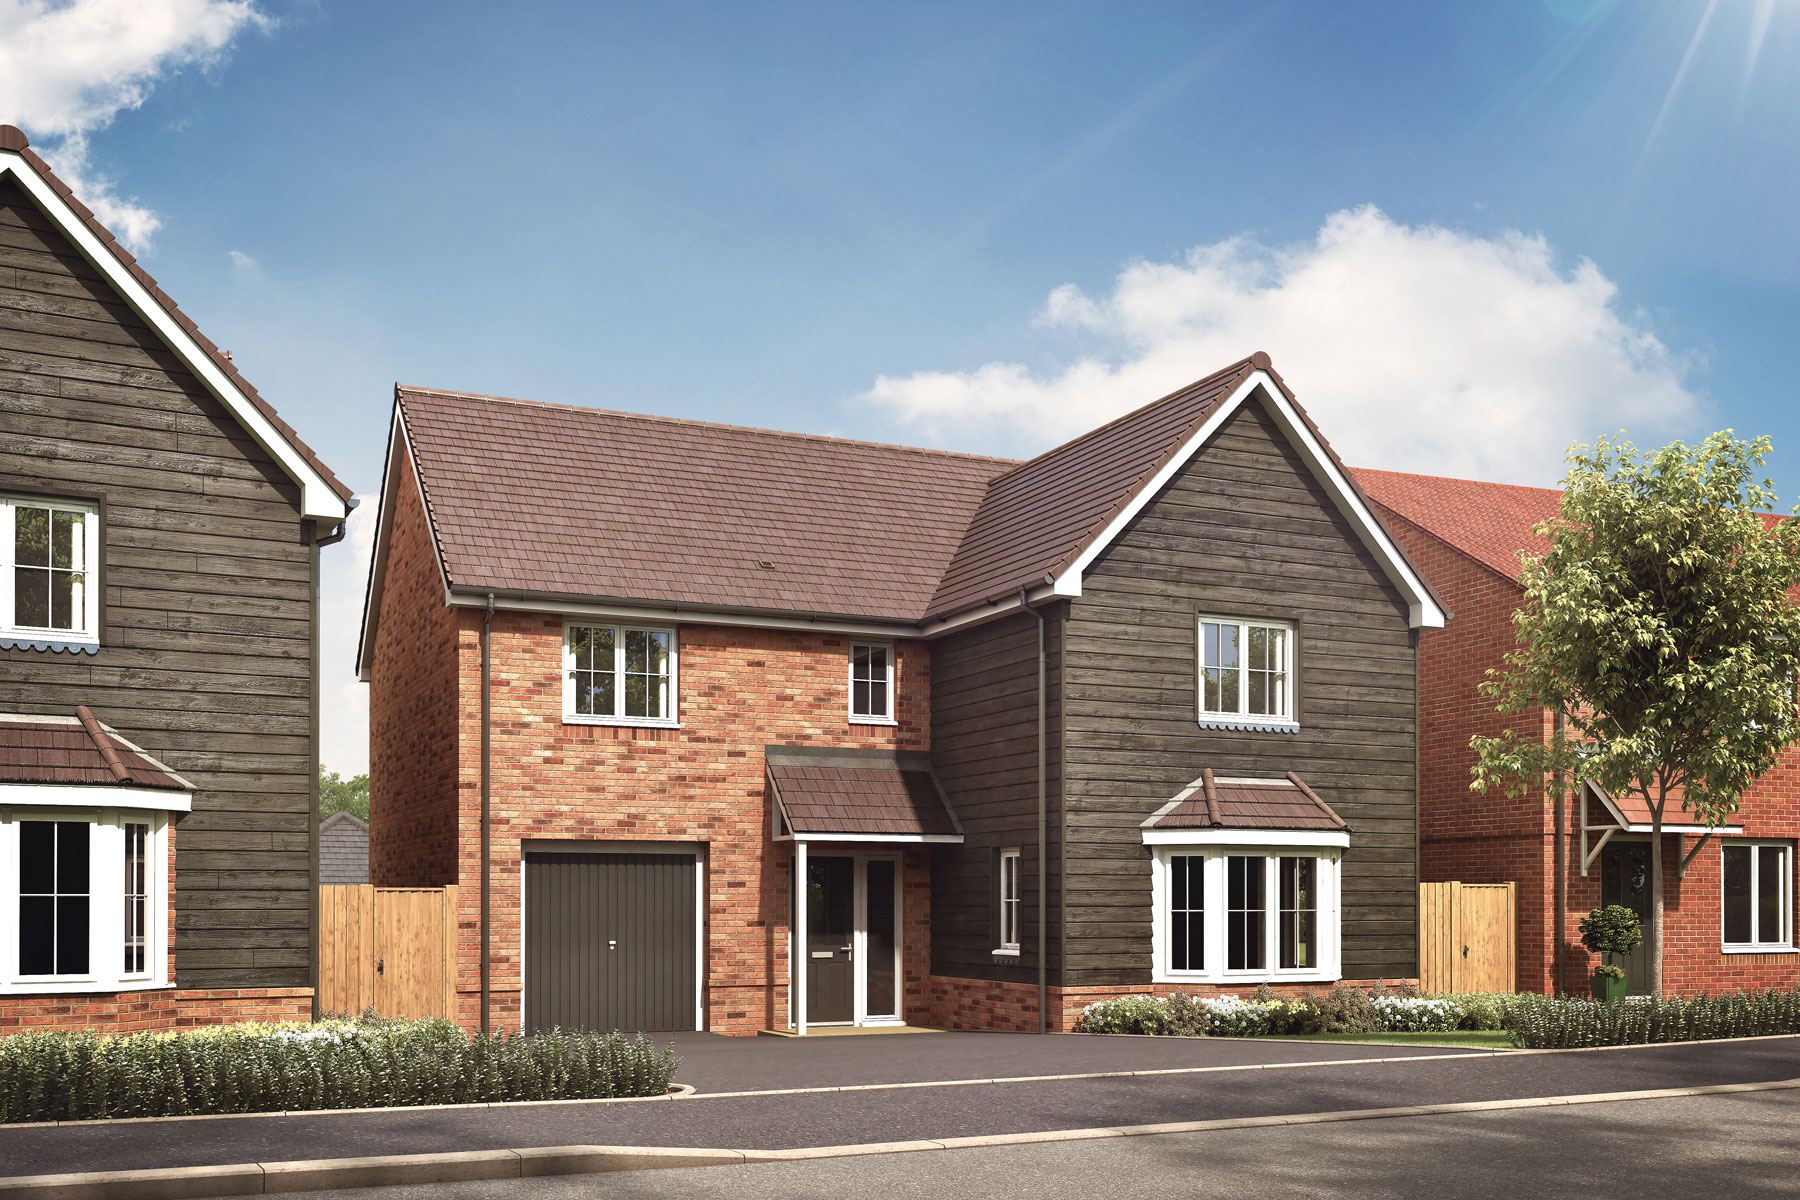 Artist's impression of a typical Fakenham home